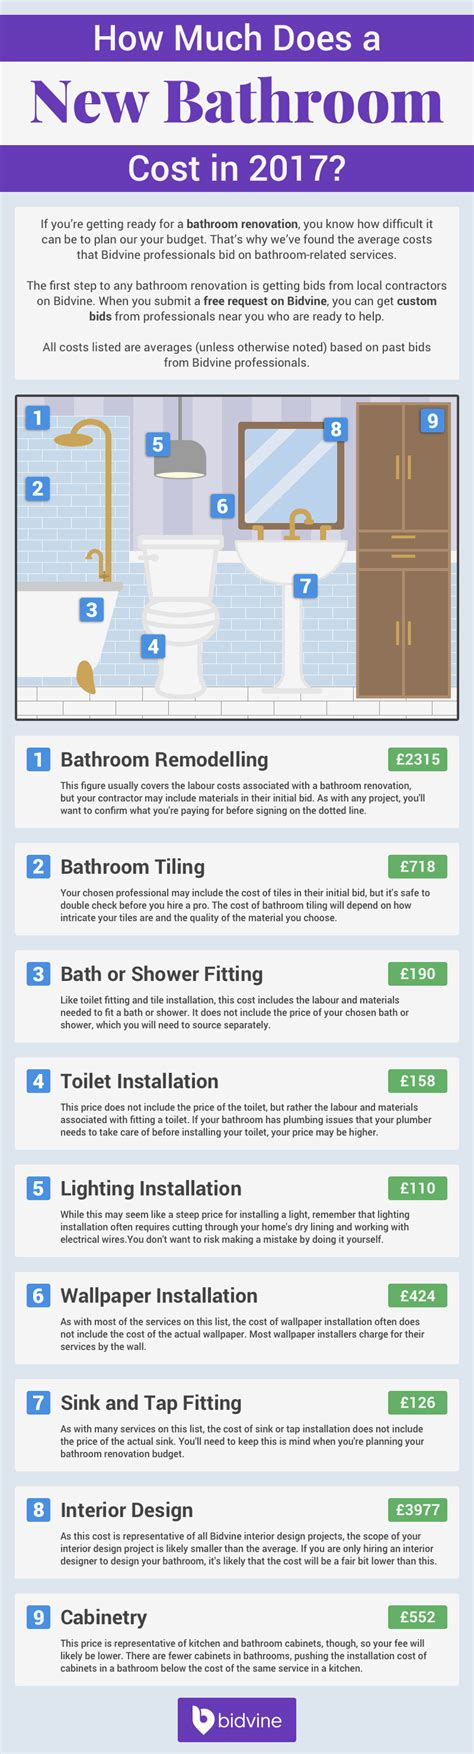 how much does a new bathroom cost how much does a new bathroom cost 2017 uk